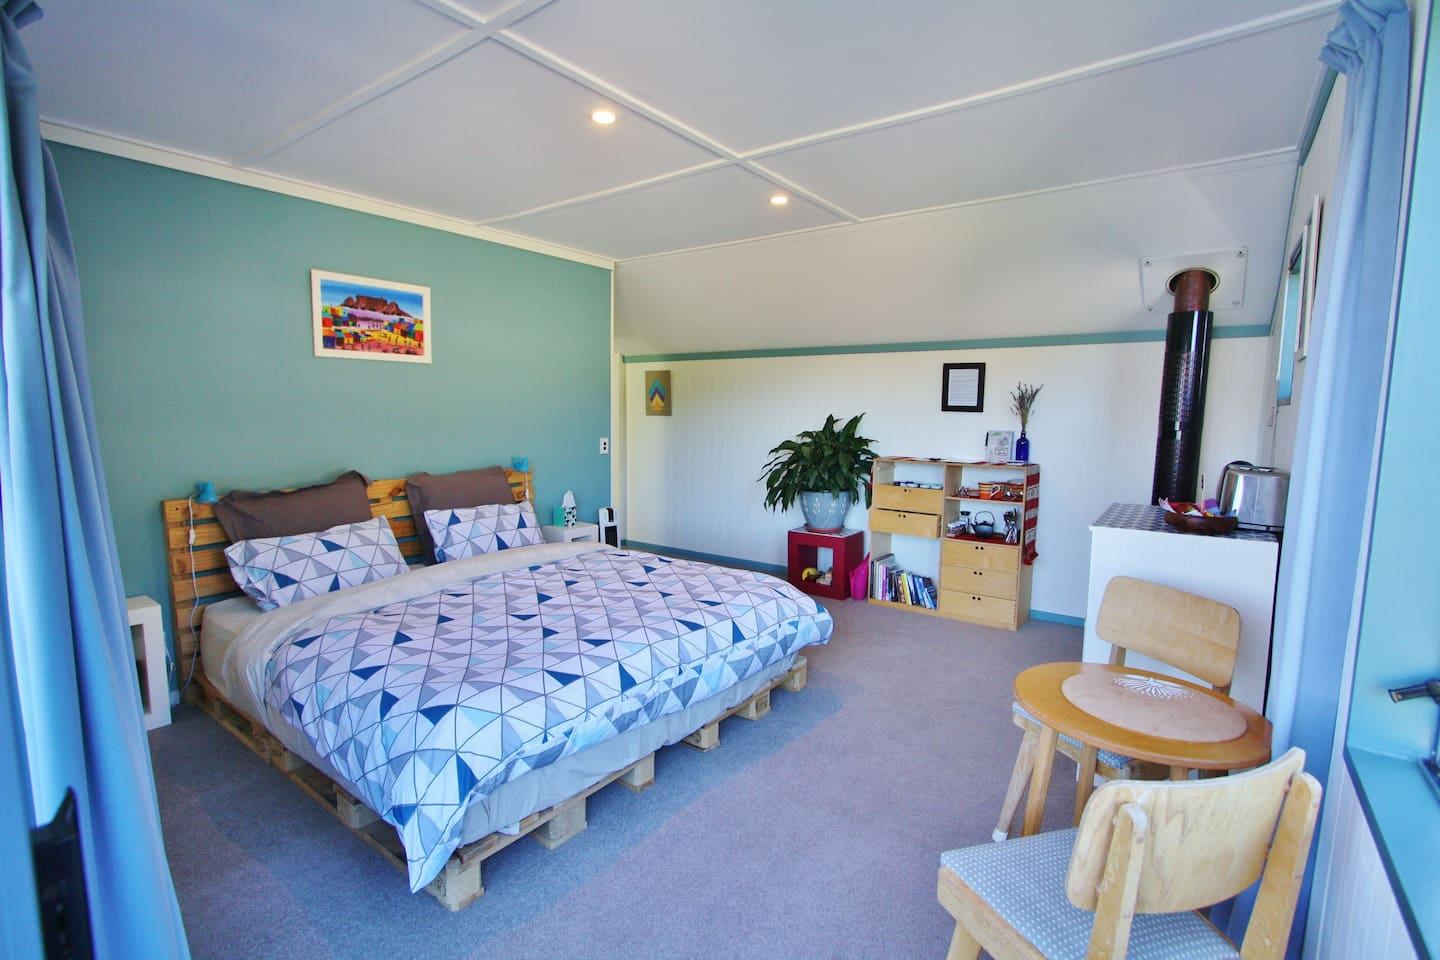 Sunny spacious warm room with comfy super king size  bed, balcony with lake and mountain views, private entry. Private upstairs level.